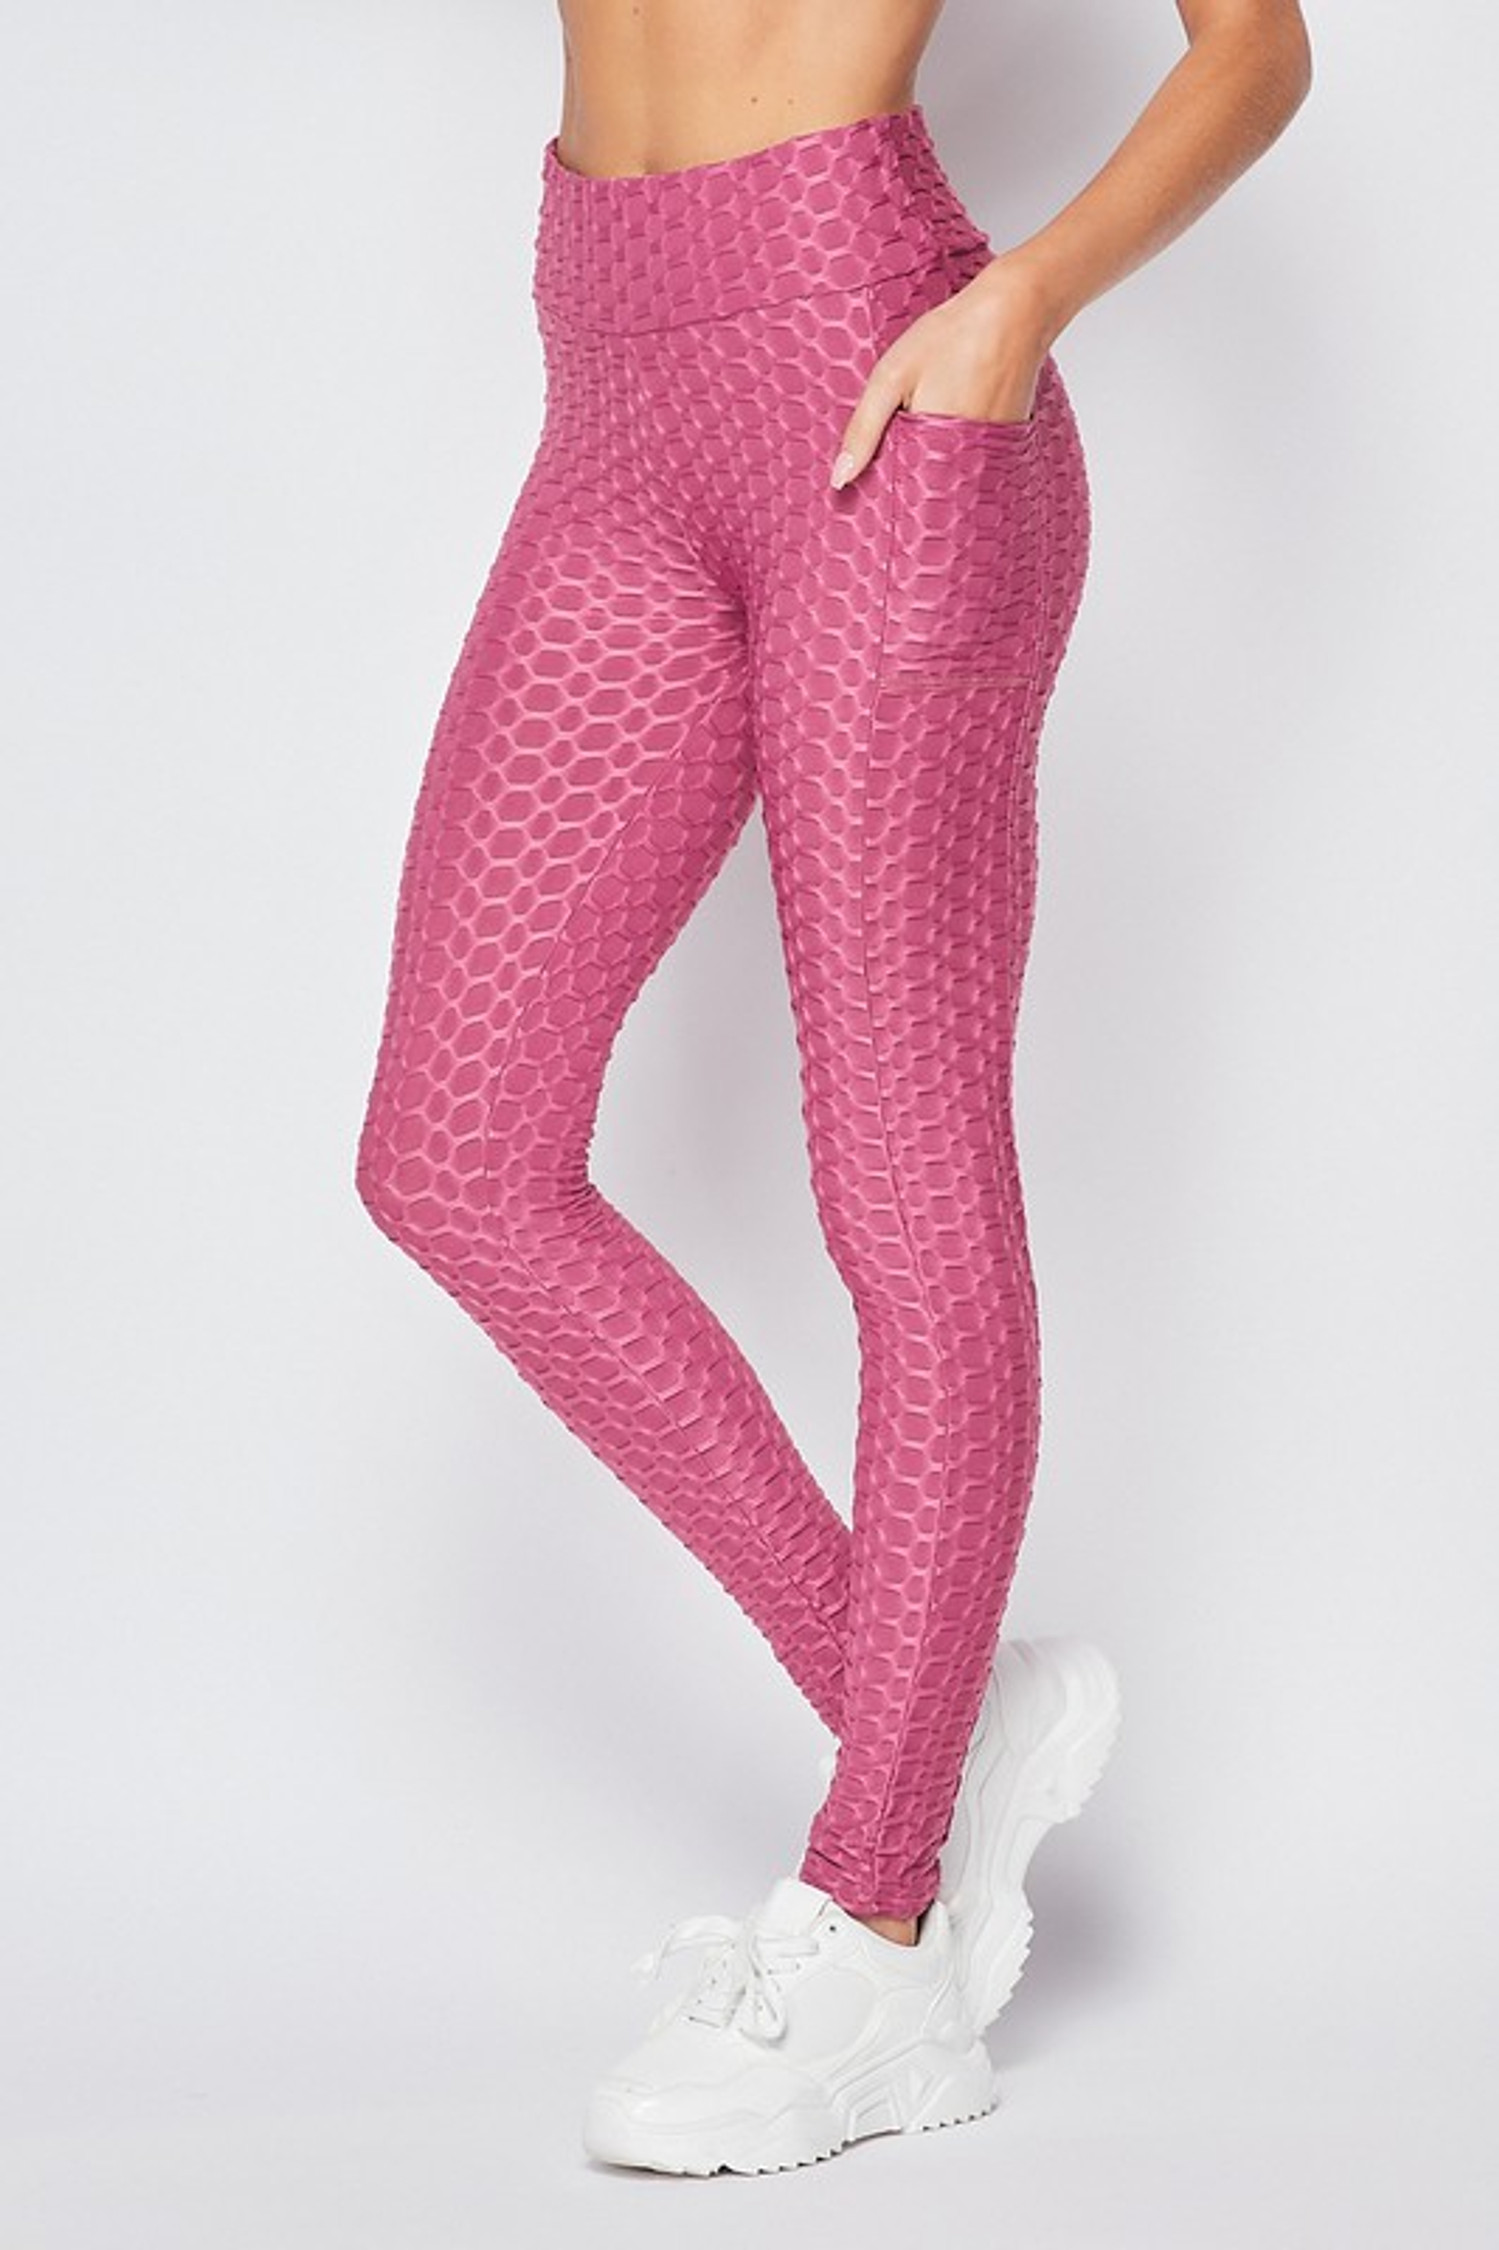 Scrunch Butt Popcorn Textured High Waisted Leggings with Pockets - Zinati (W&J)